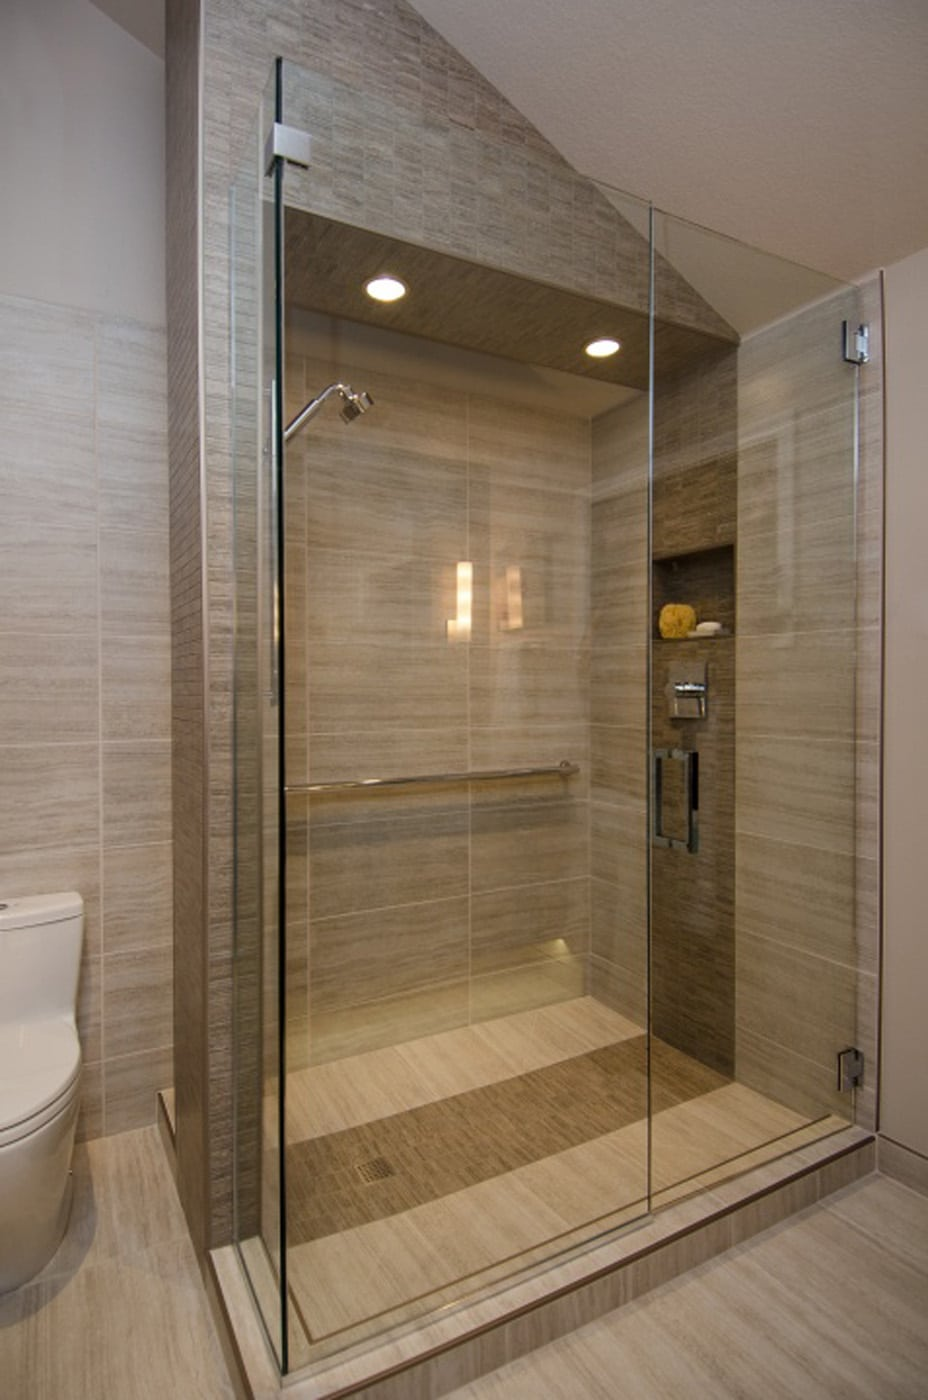 Pangaea interior design contemporary master bathroom with vaulted ceiling Bathroom tile showers